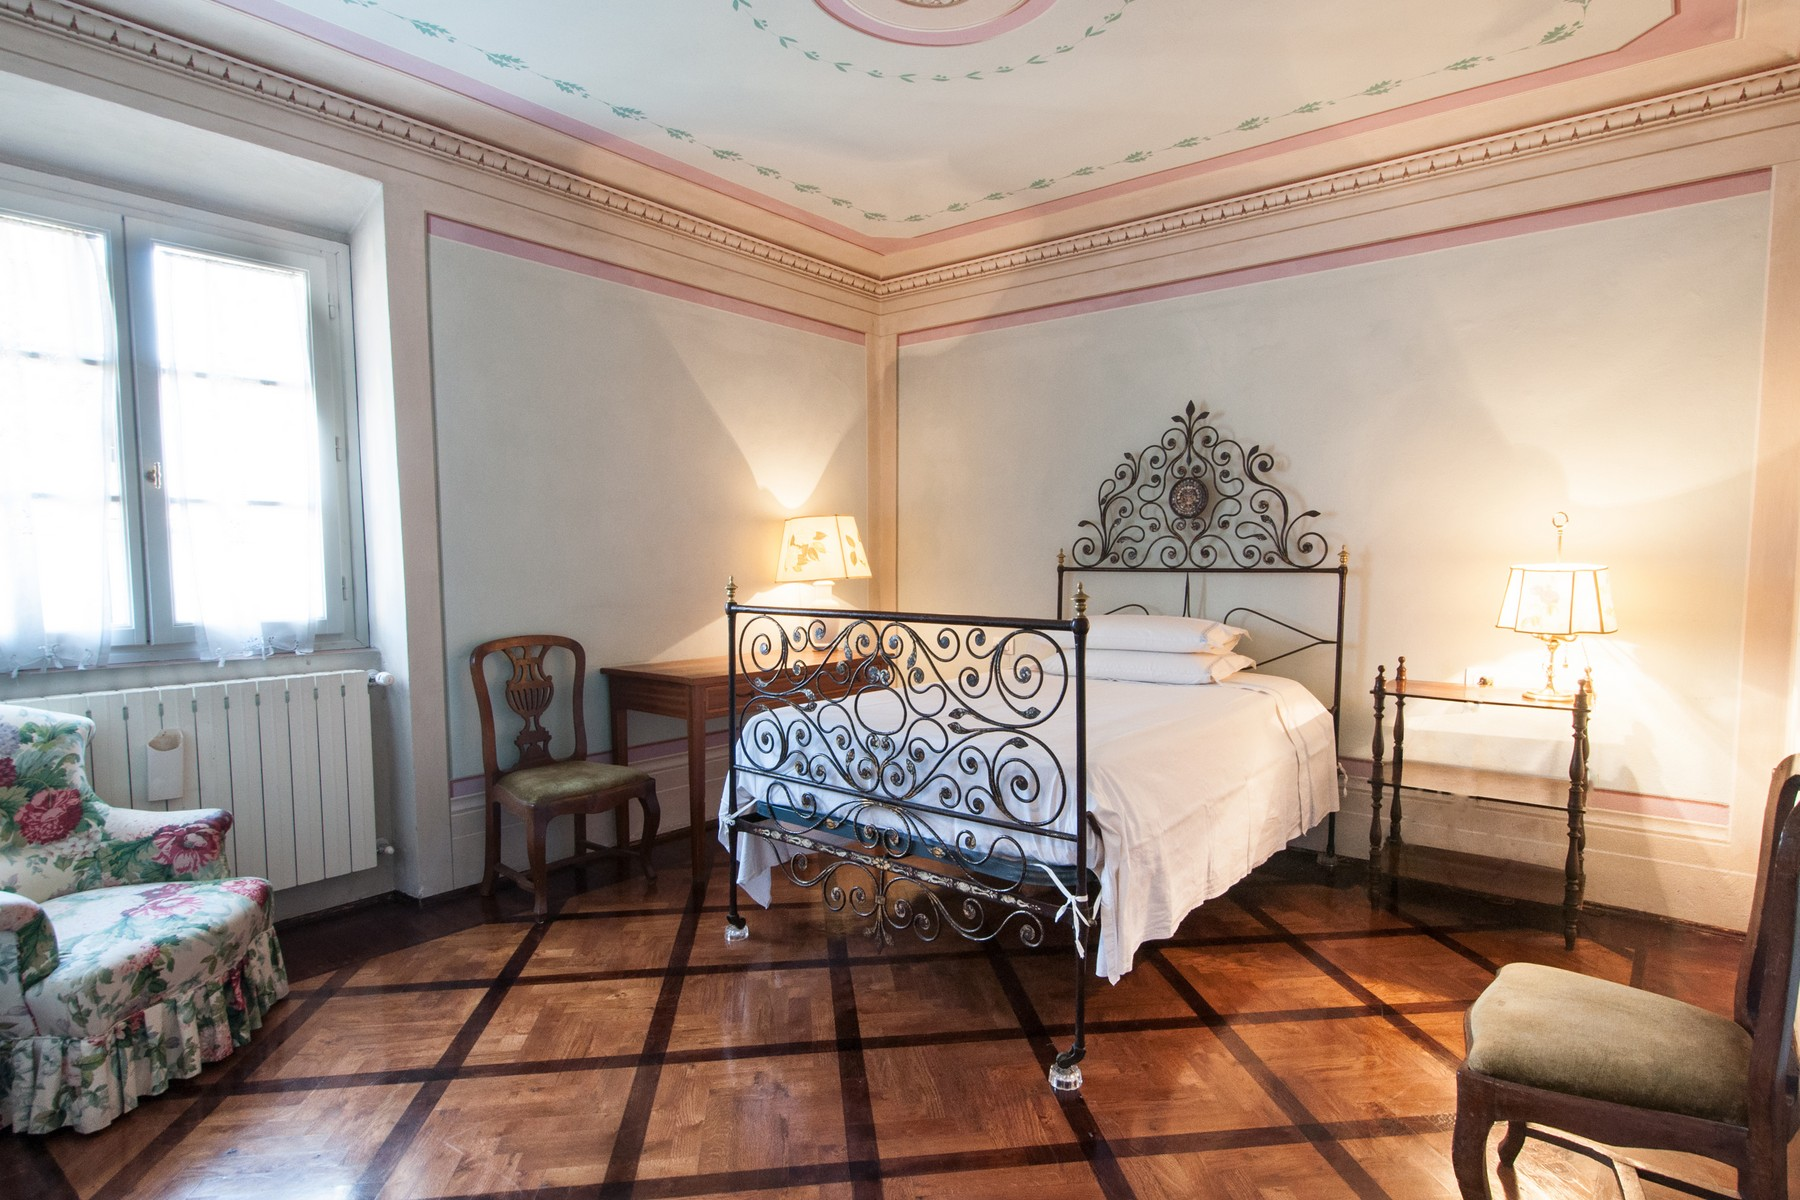 Additional photo for property listing at Prestigious apartment with frescoes Piazza San Francesco Prato, Prato 59100 Italie